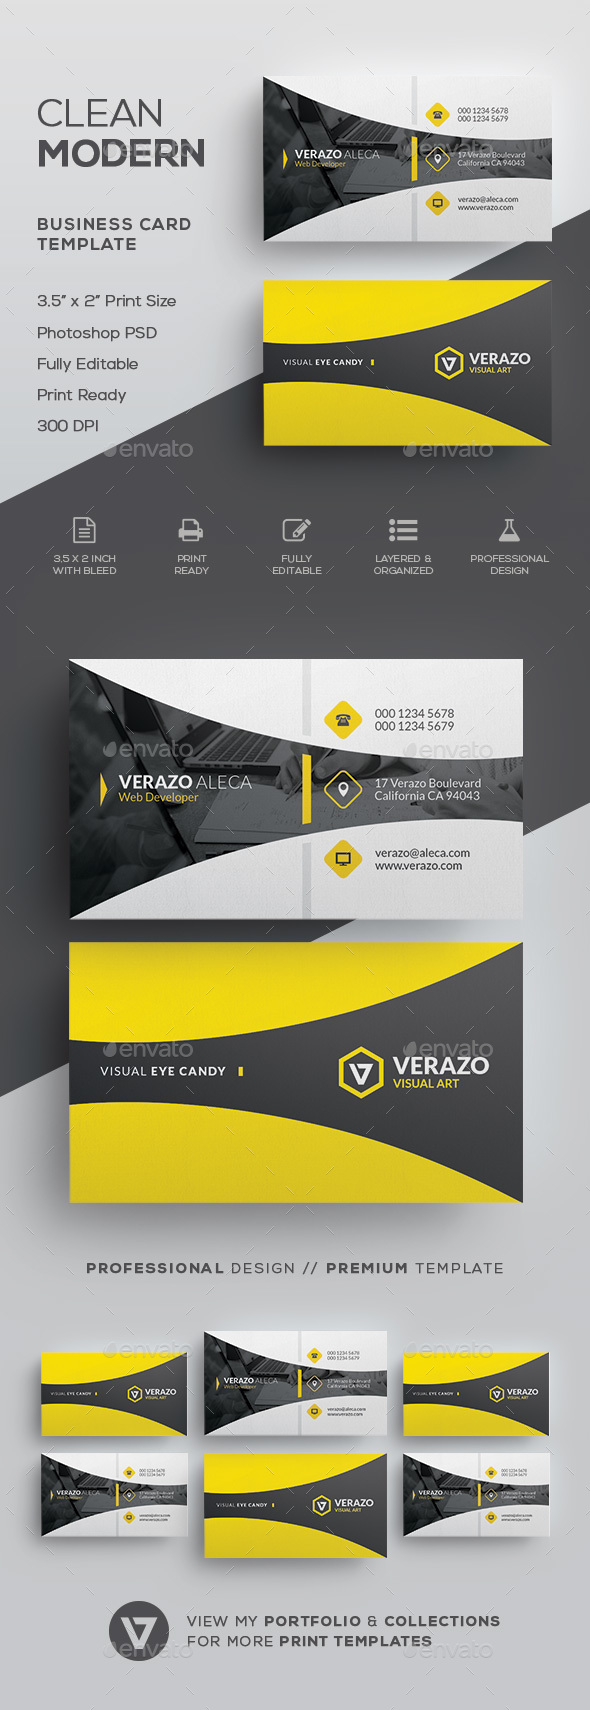 Clean Modern Business Card Template - Corporate Business Cards